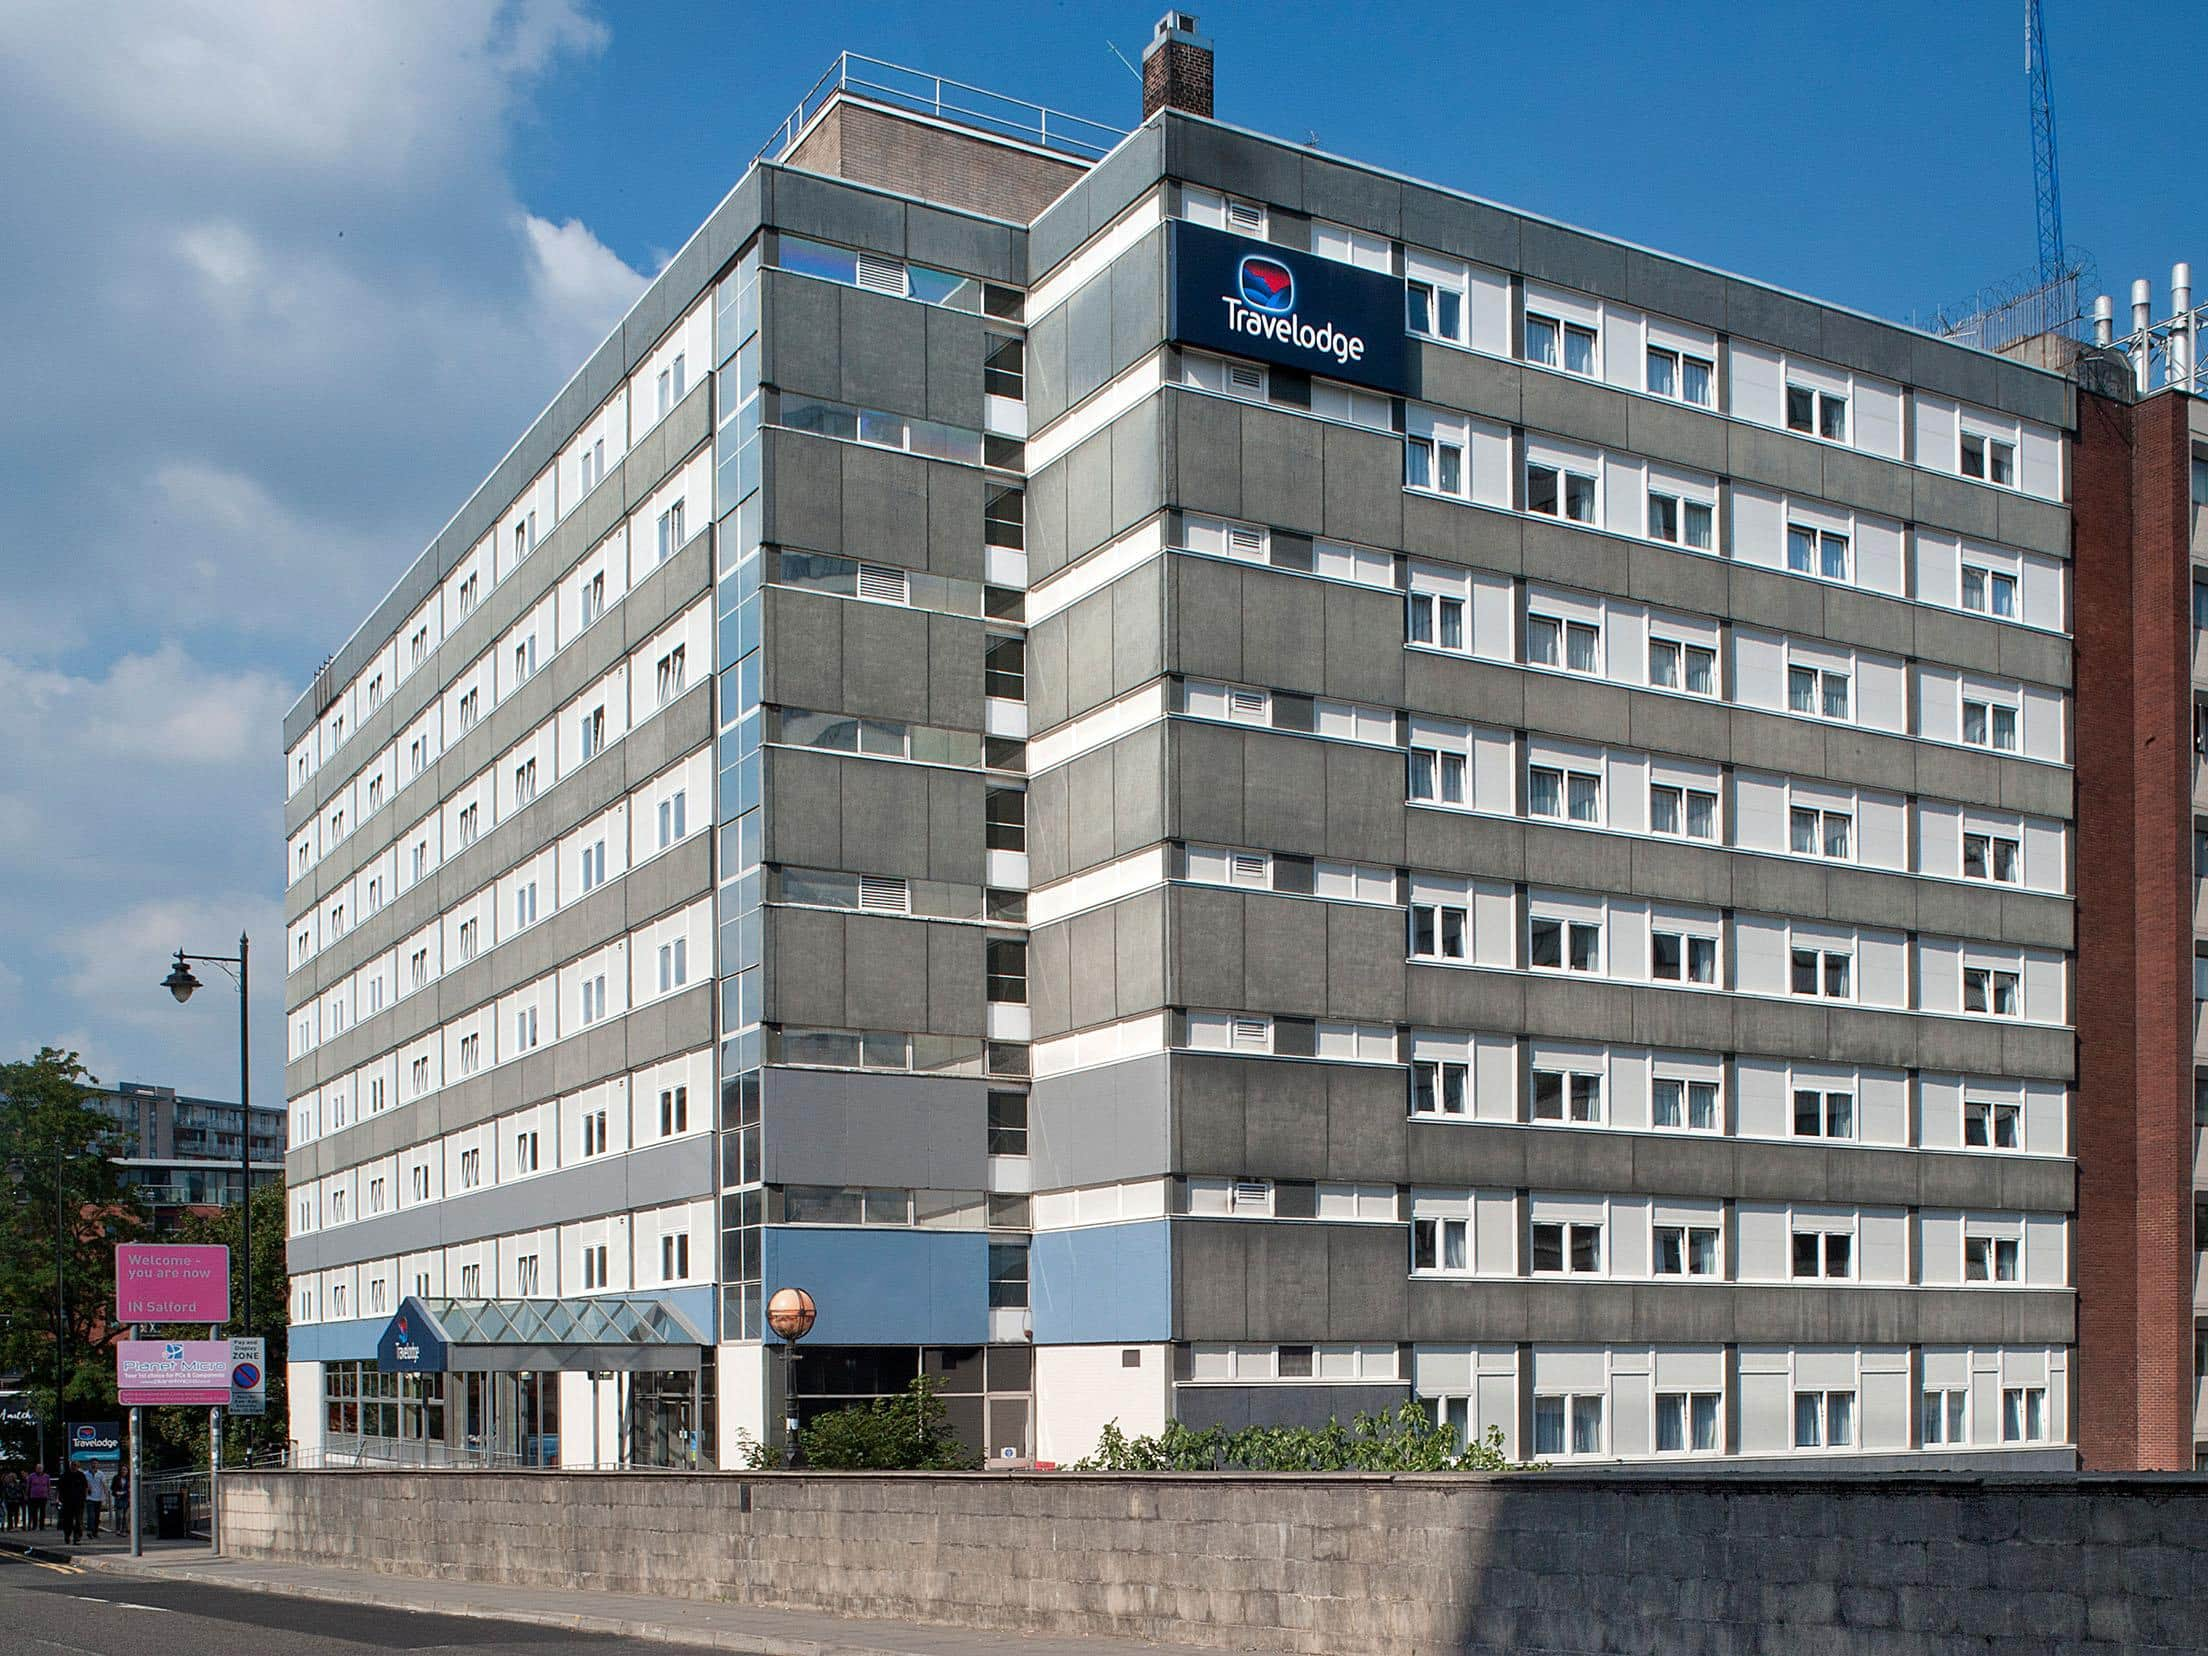 Manchester Arena Hotel Travelodge